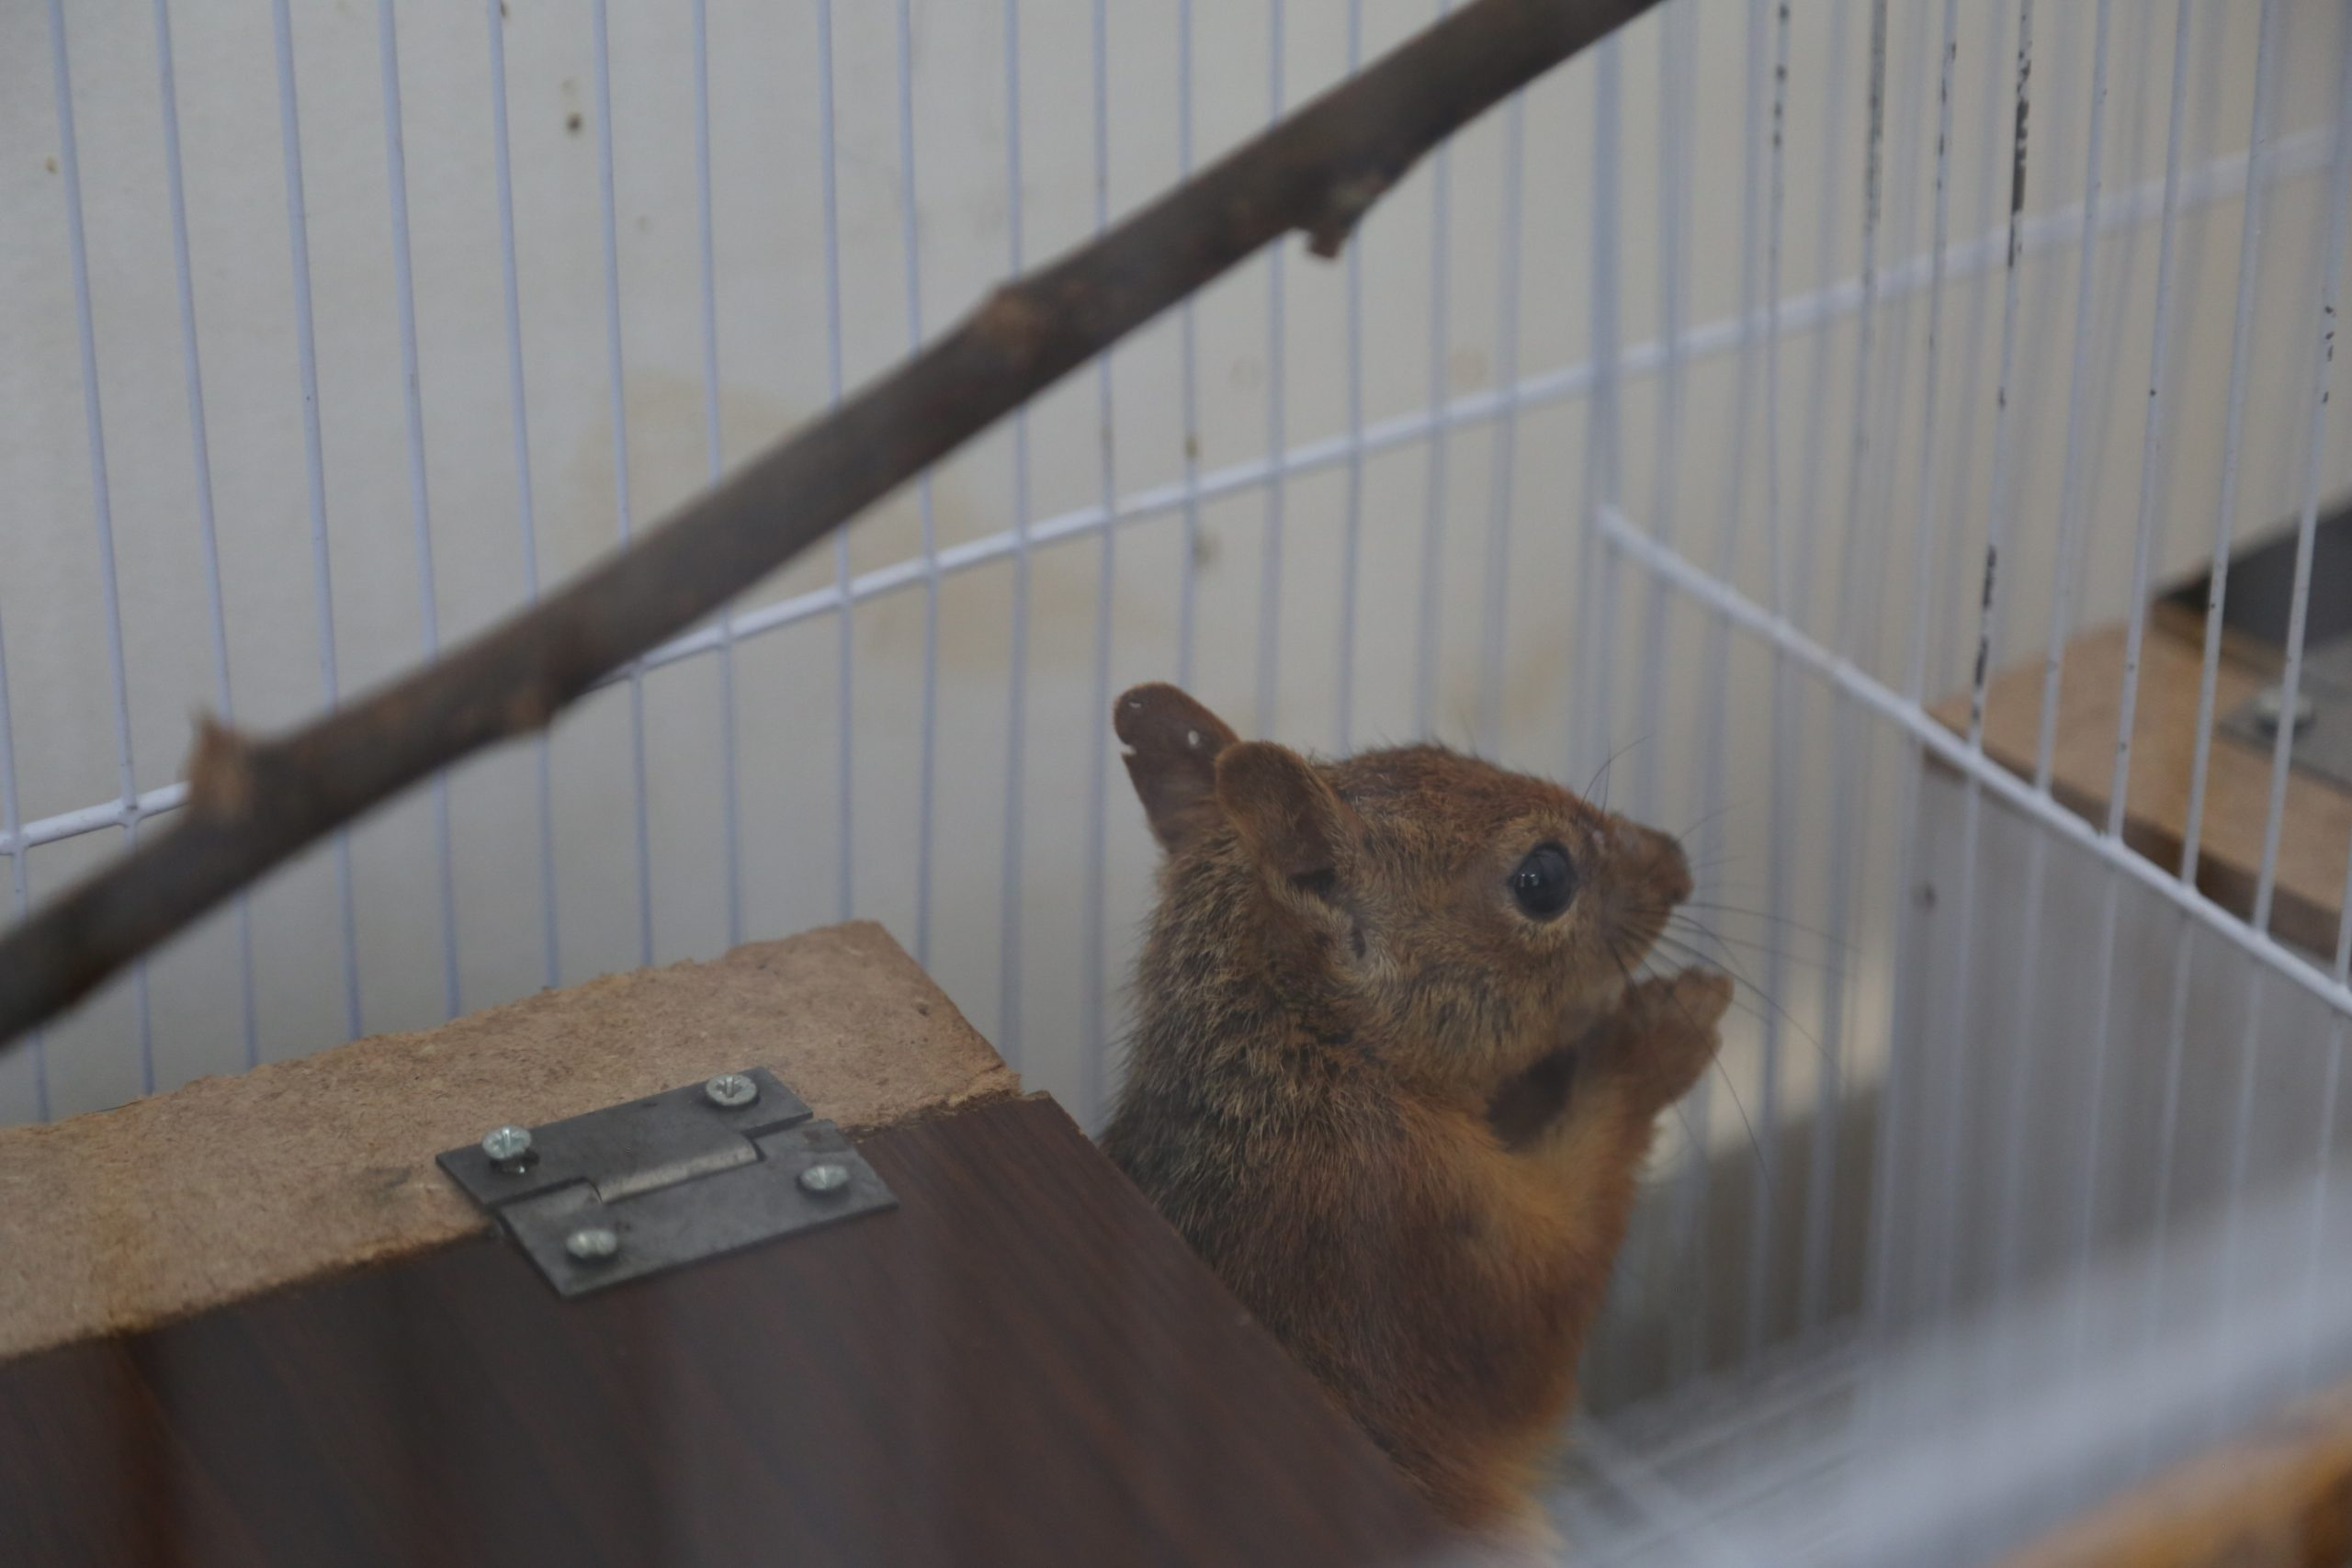 A squirrel before his release